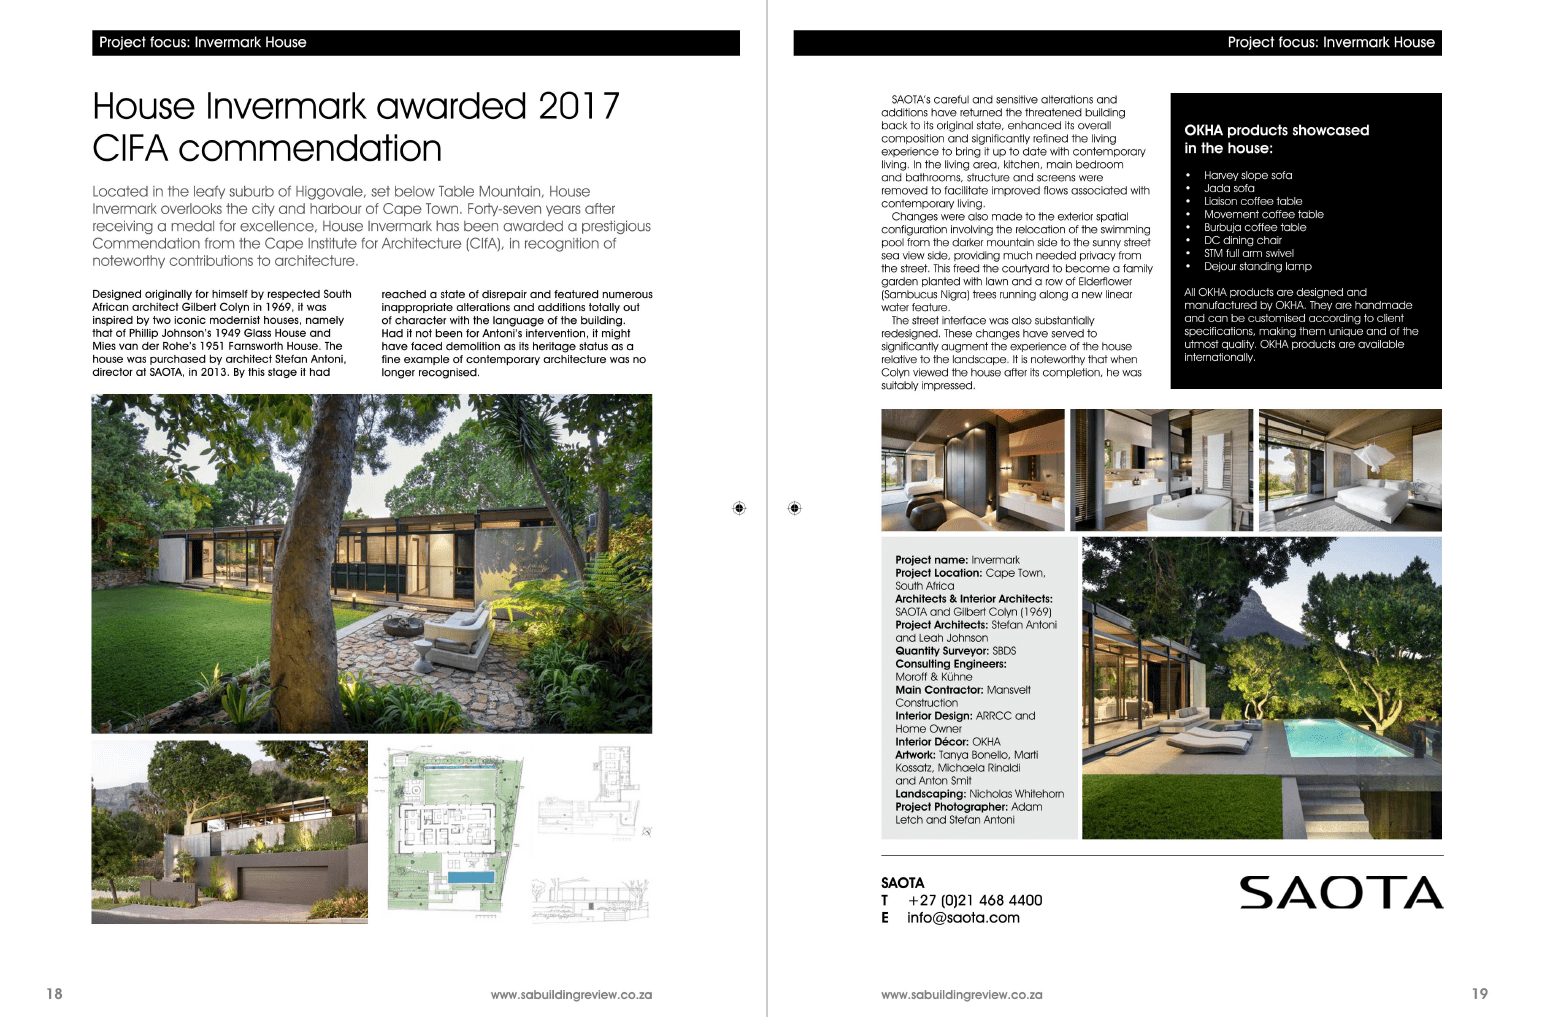 Invermark, Cape Town in SA Building Review Magazine - SAOTA ... on worms around homes, landscapes around homes, landscaping around homes, fire around homes, fences around homes, gardens around homes,